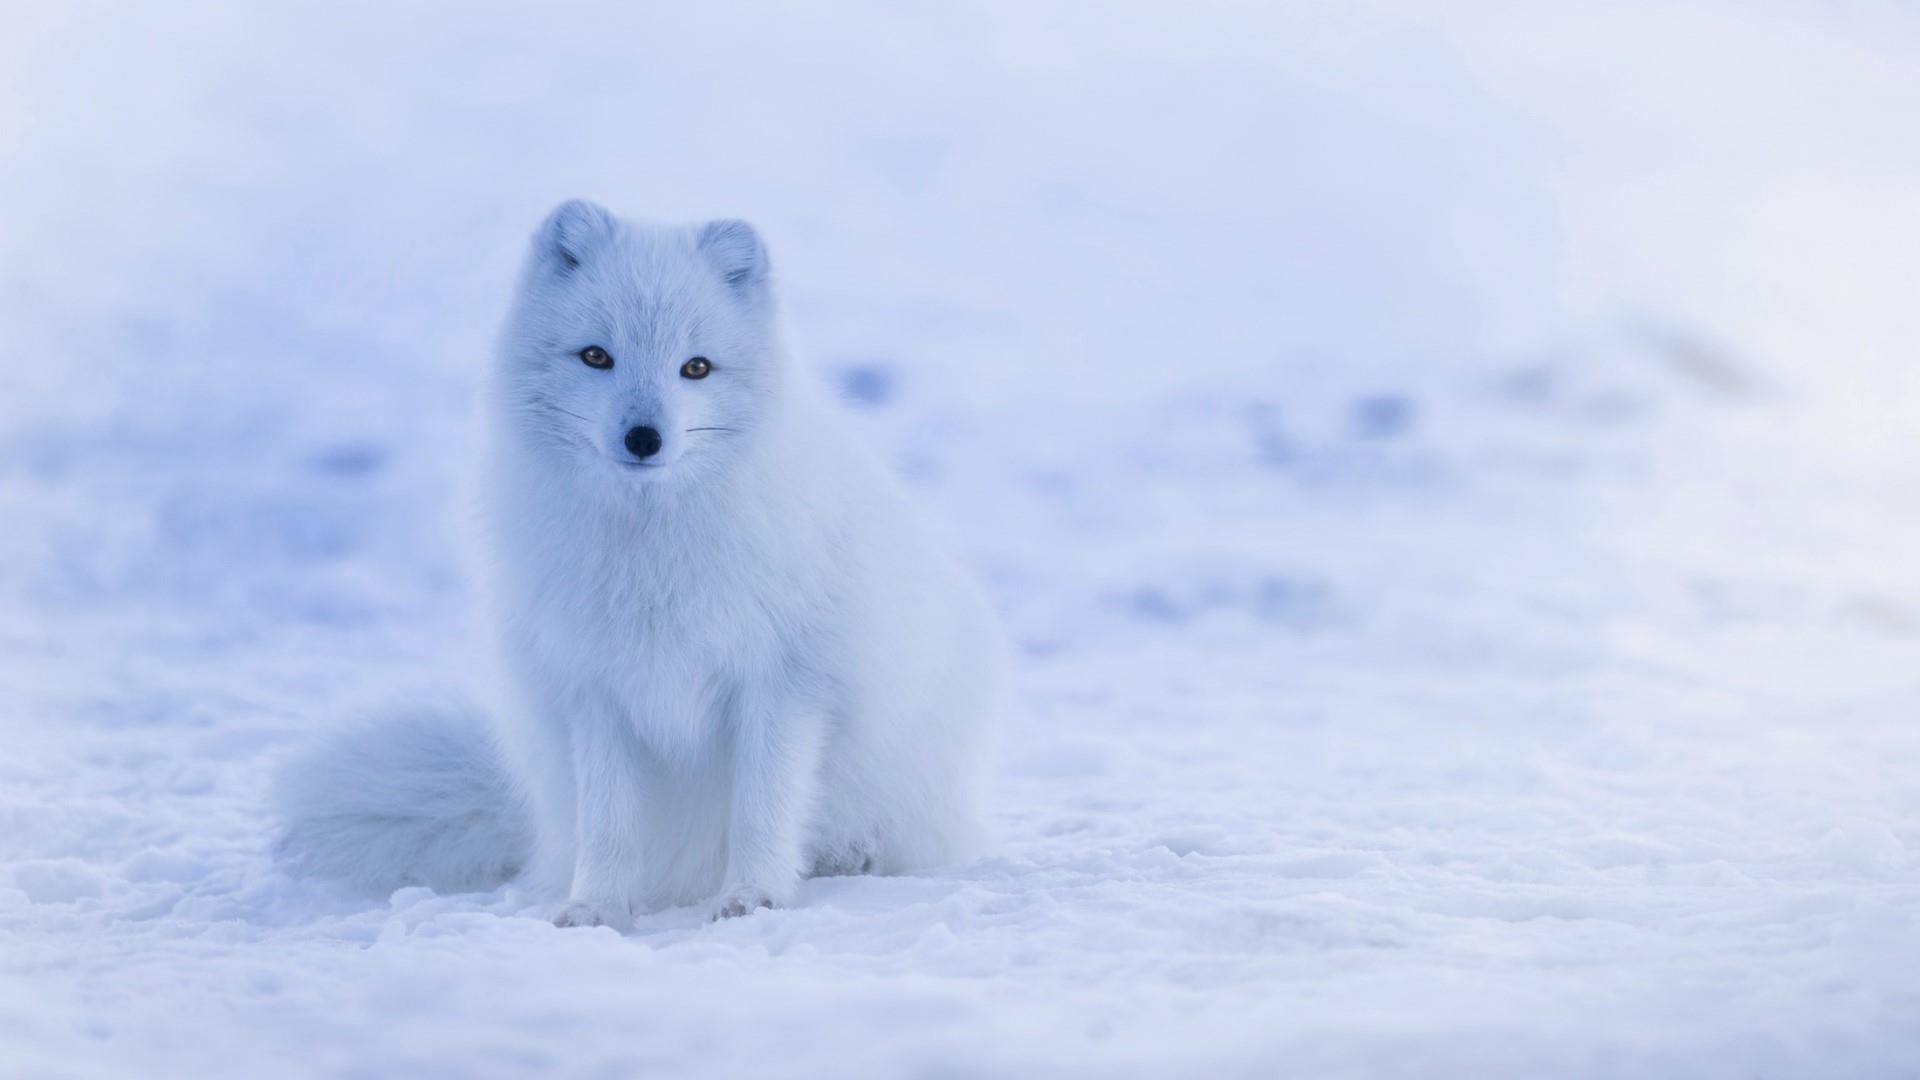 Res: 1920x1080, Arctic Fox Wallpaper | Wallpaper Studio 10 | Tens of thousands HD and  UltraHD wallpapers for Android, Windows and Xbox